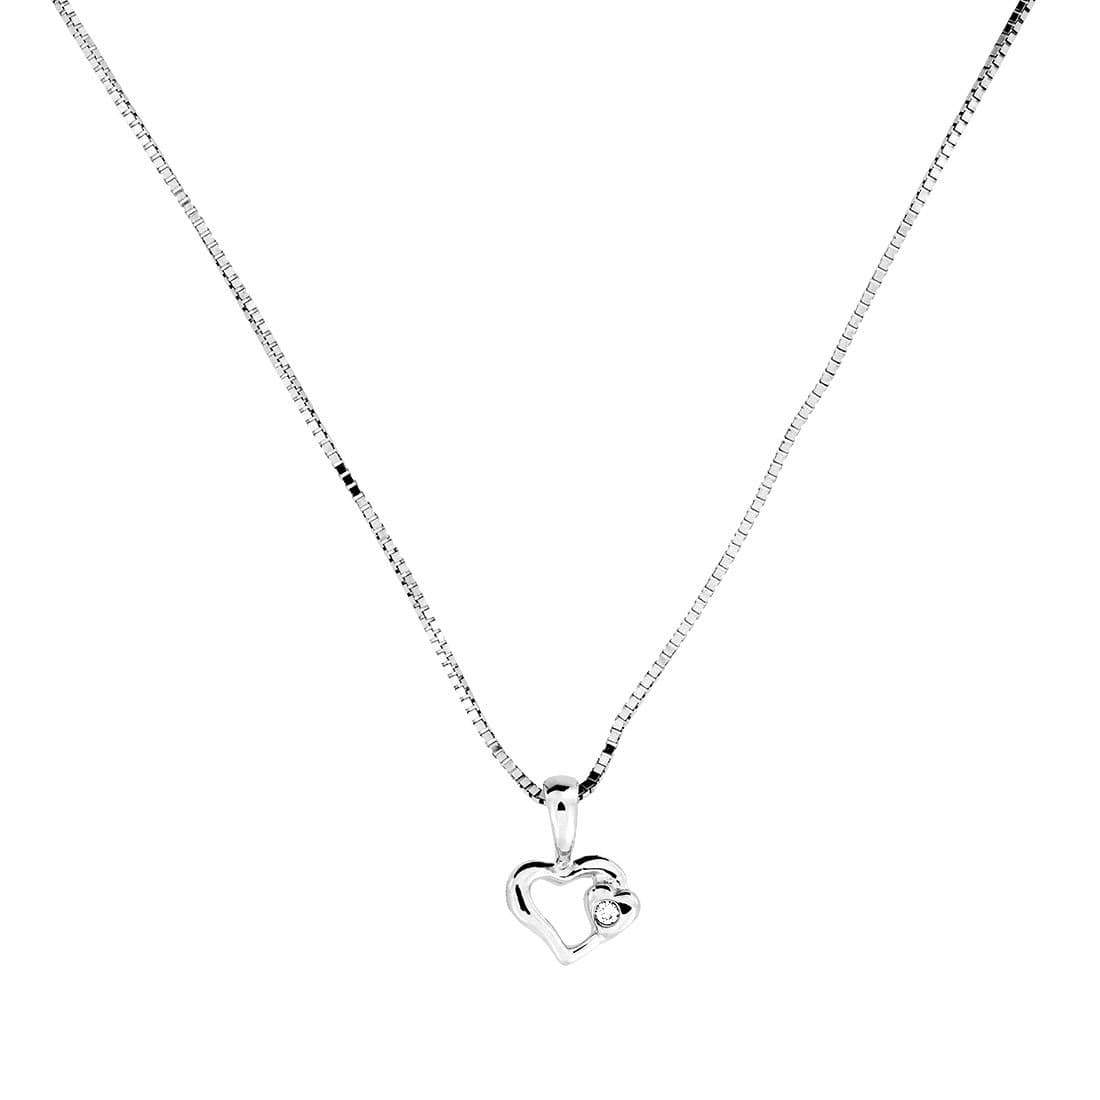 9ct White Gold and Diamond Little Heart Pendant